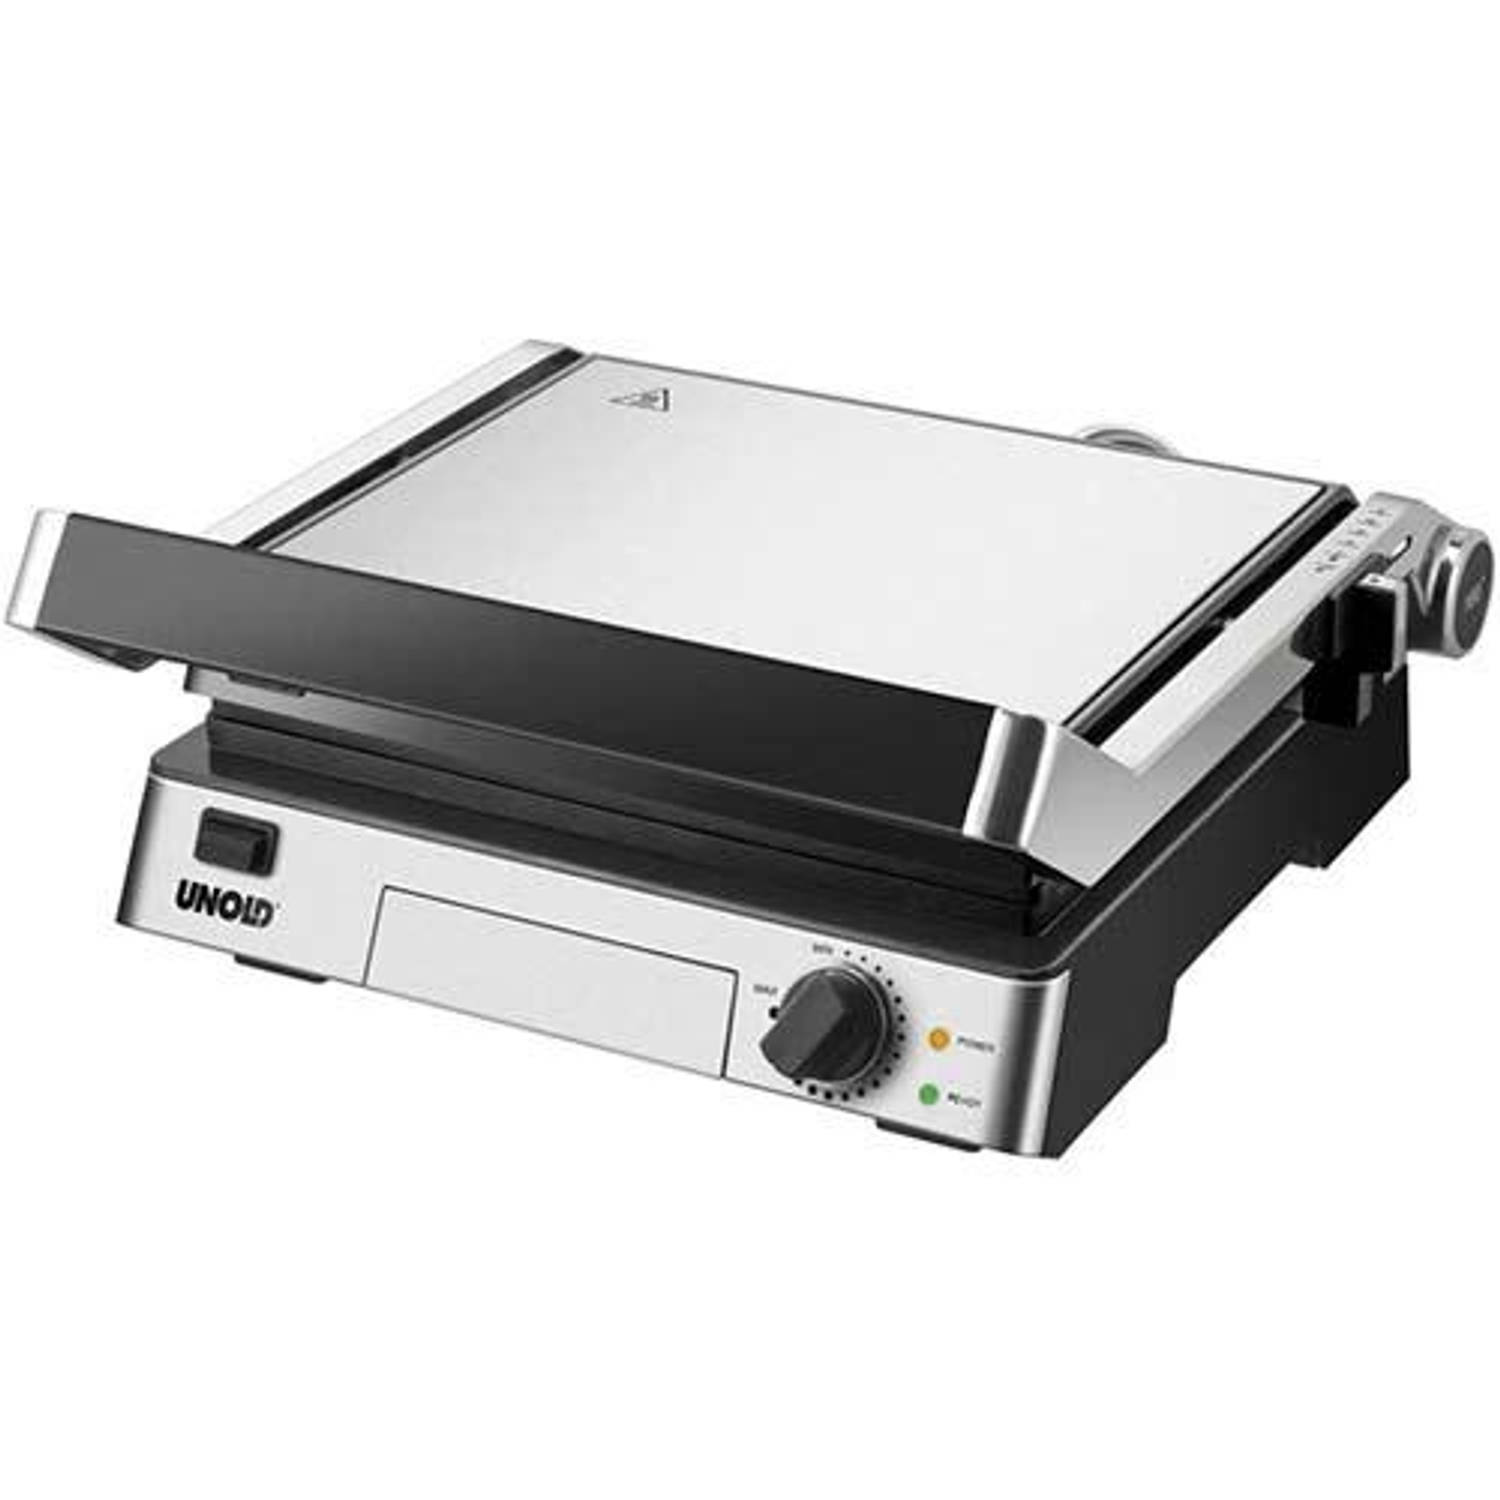 Grill 58526 - unold